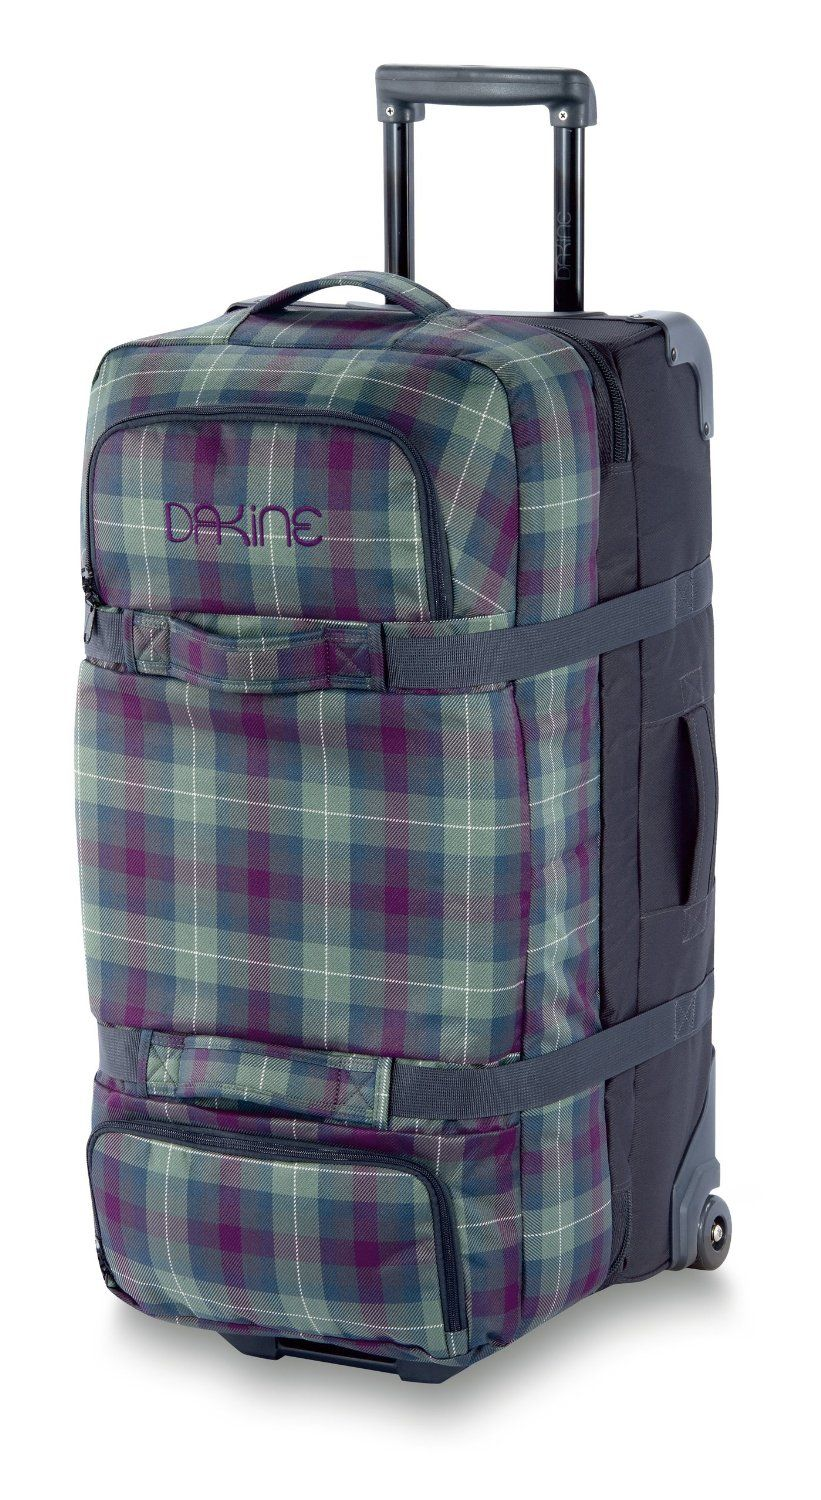 bc51f502f3021 Dakine Girl s Split Roller Luggage